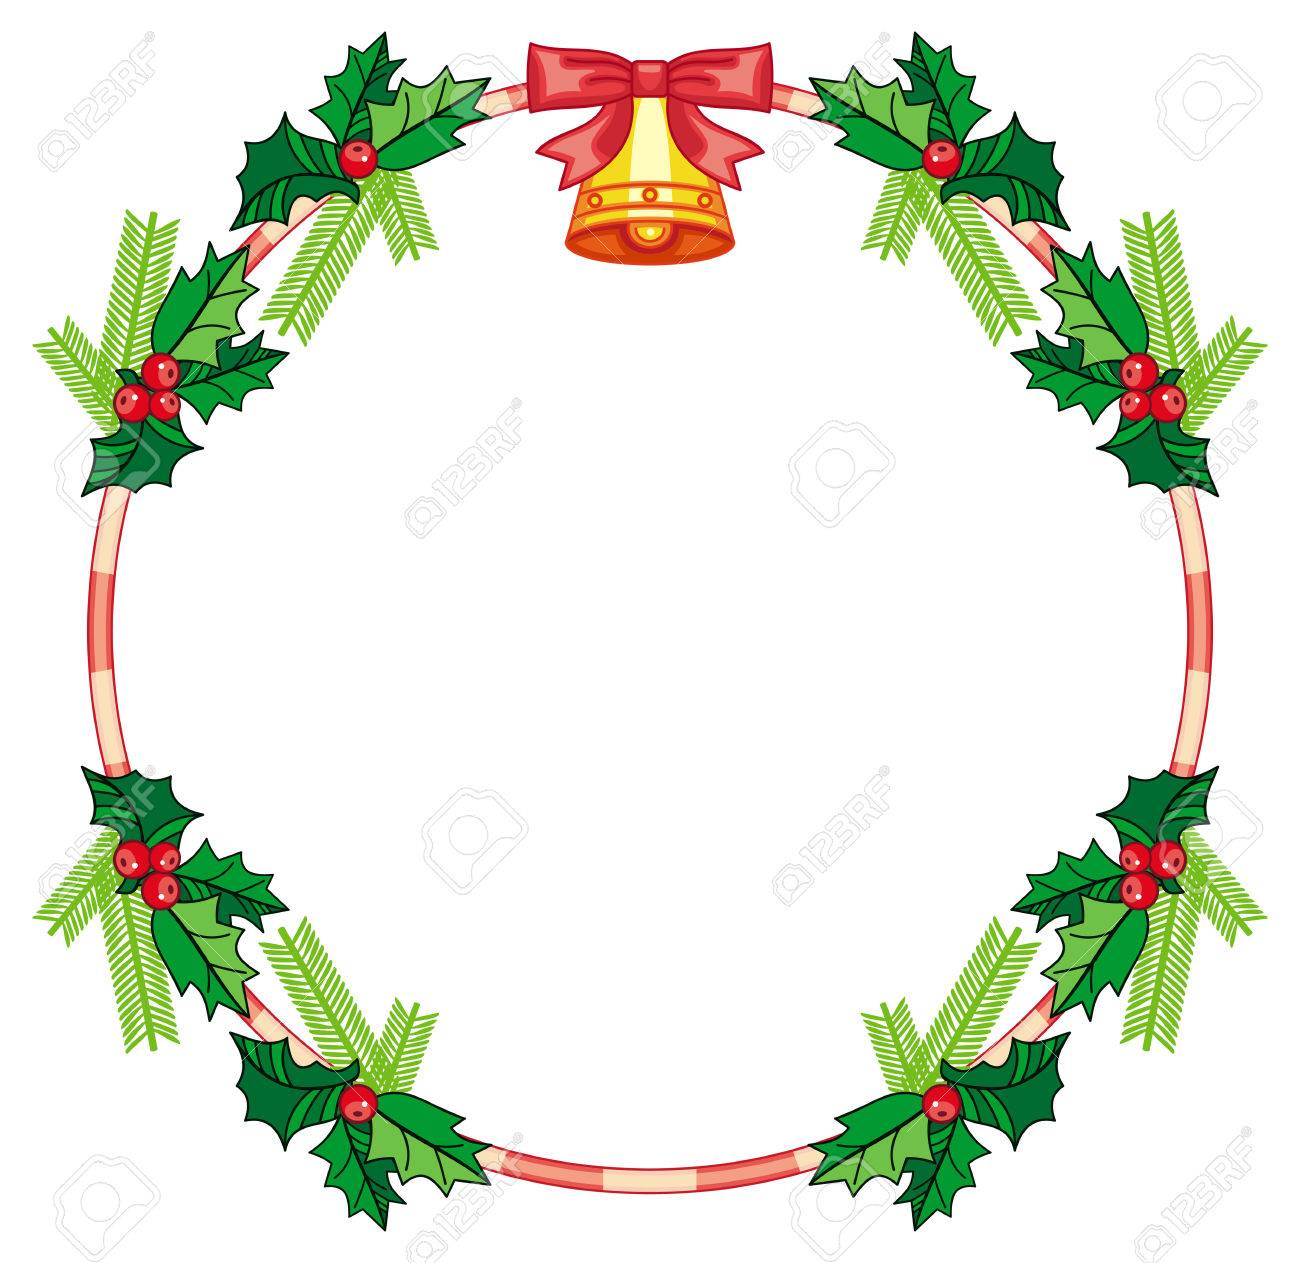 Vector Clip Art. Round Frame With Holly Berry And Jingle Bells. Copy Space.  Christmas Decoration. Vector